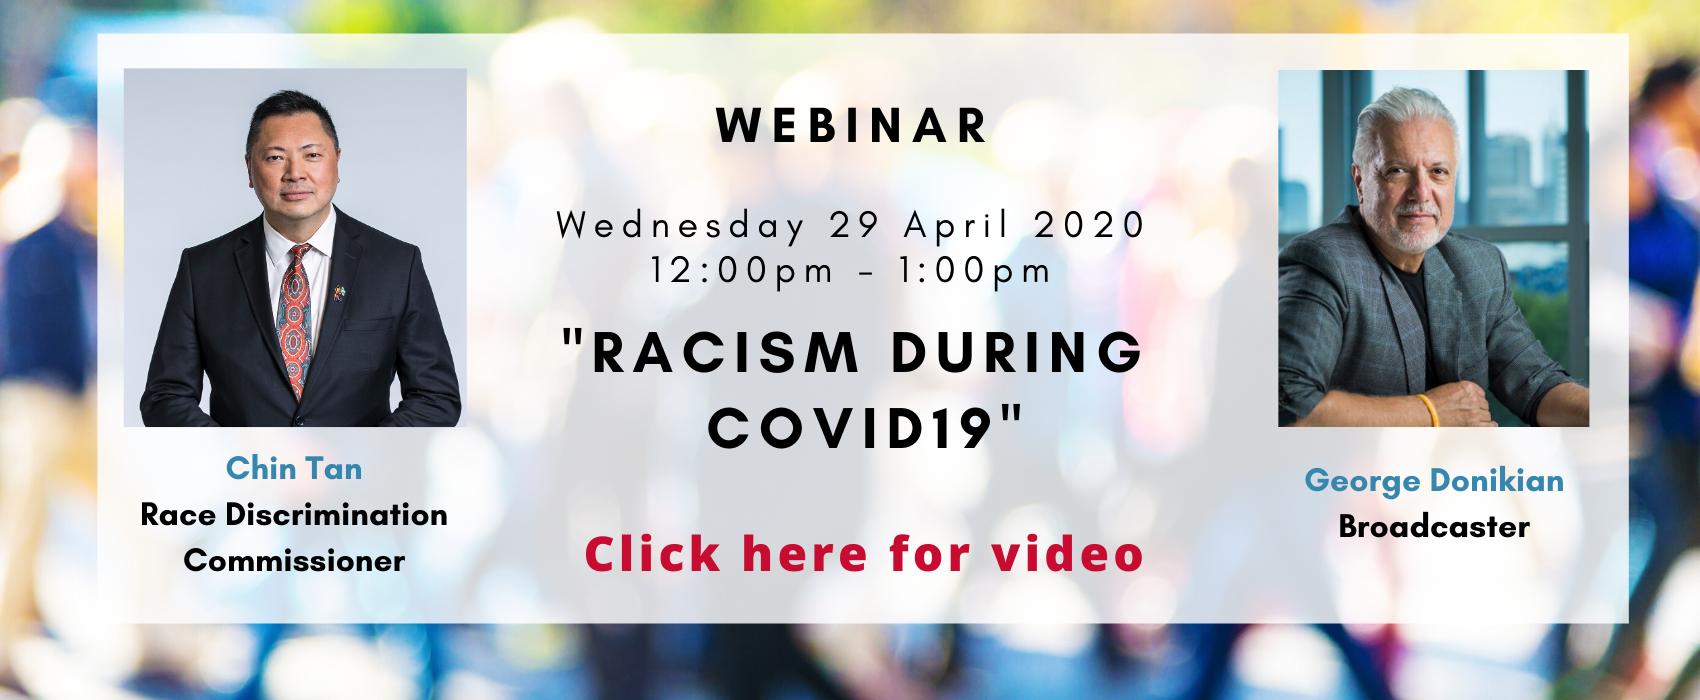 Racism During COVID-19